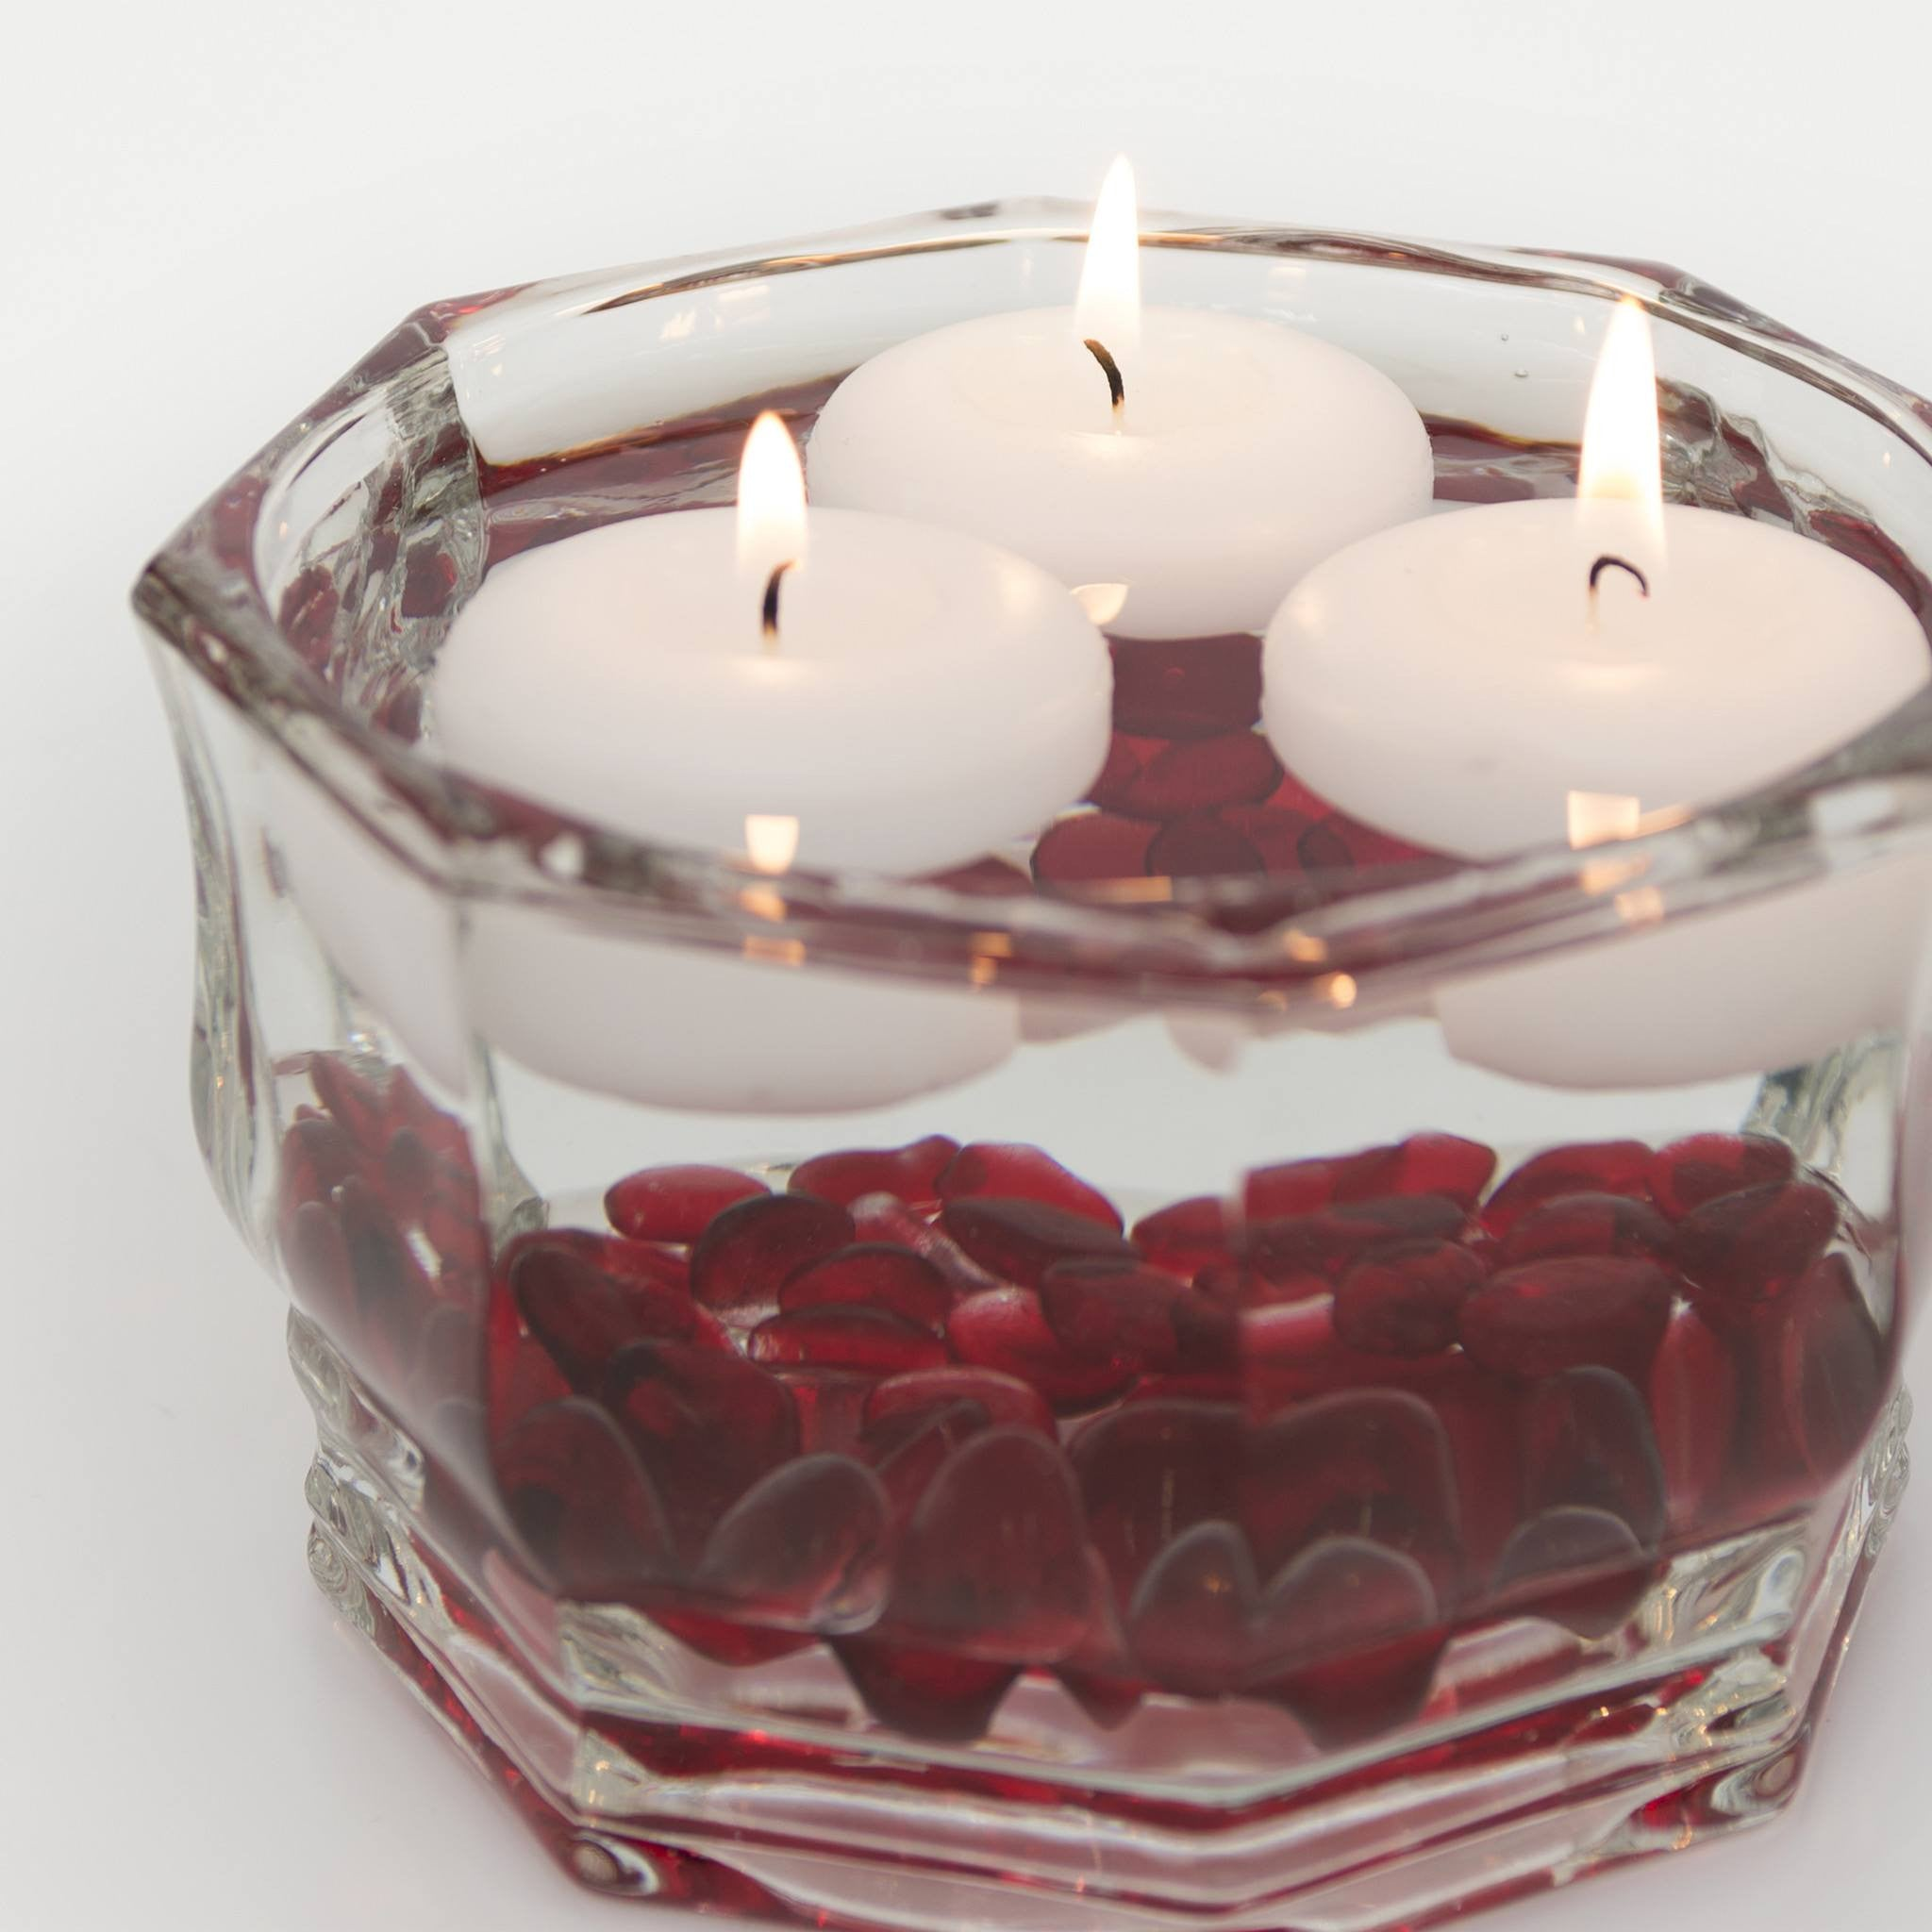 Decorative Glass Bowl - Faceted Octagon Candle Holders Candlemart.com $ 5.00